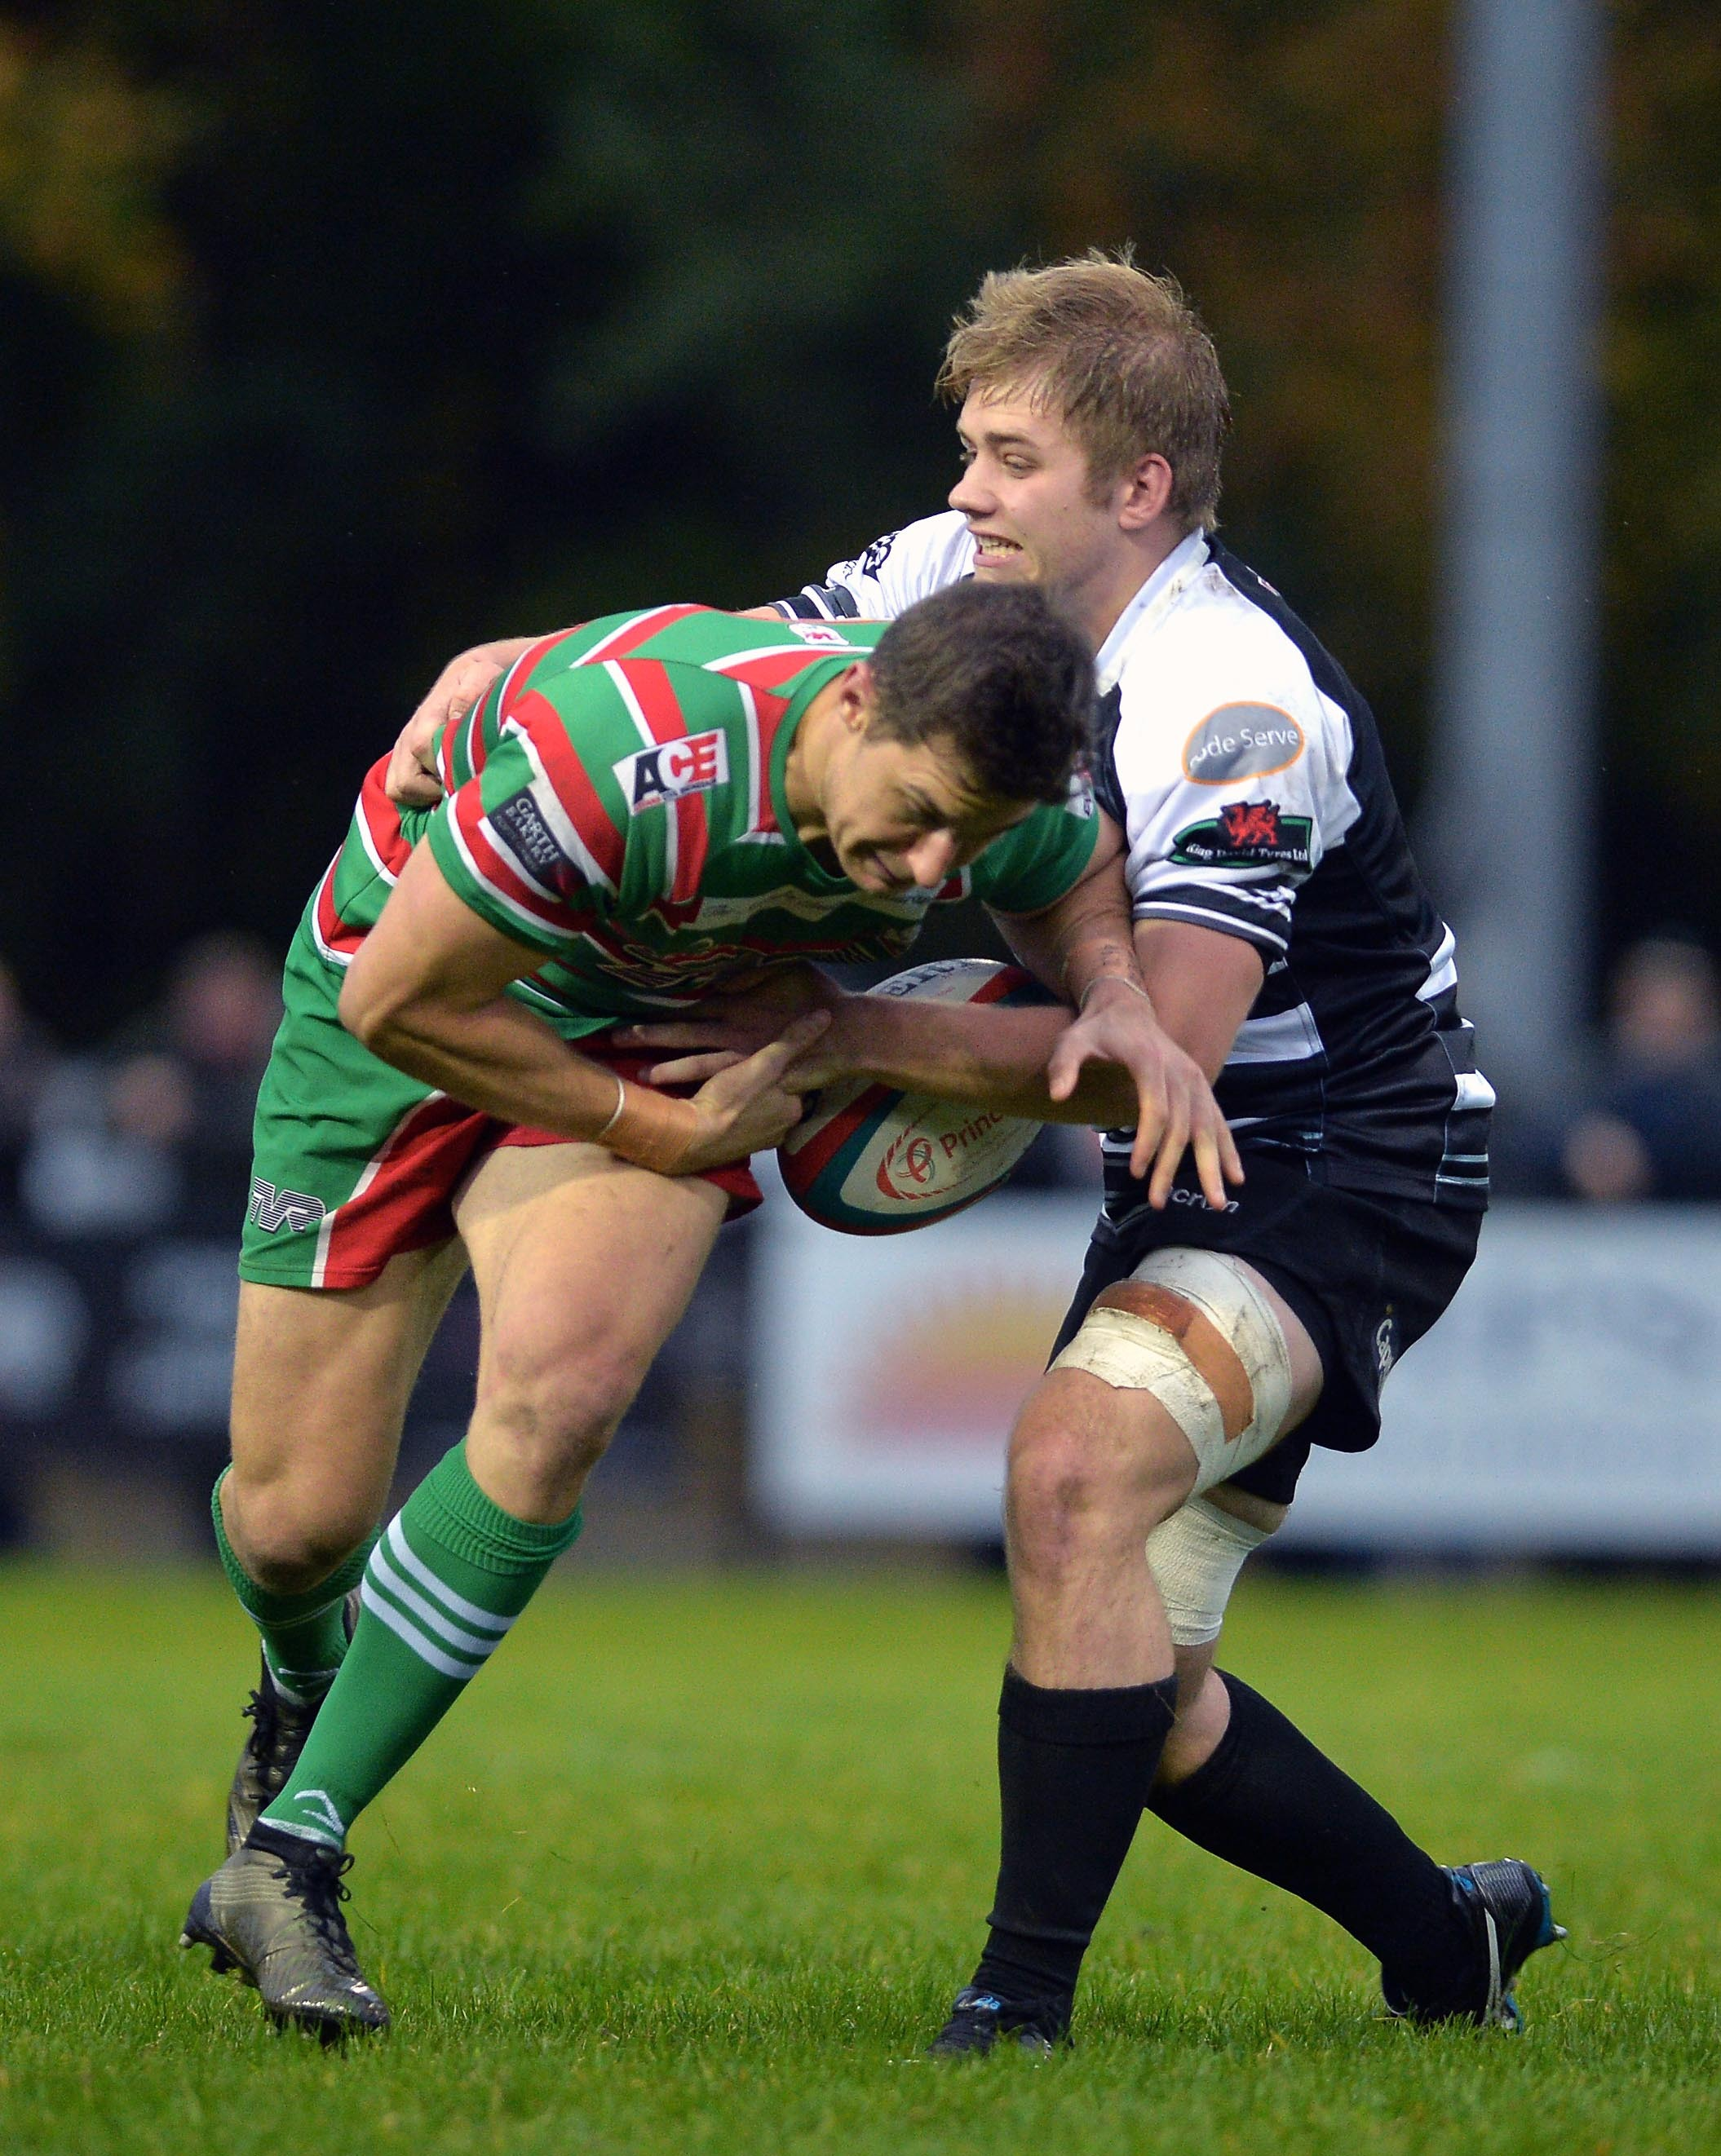 HELD: Ebbw Vale's Carl Meyer is caught by Joe Thomas of Cross Keys. Picture: christinsleyphotography.co.uk